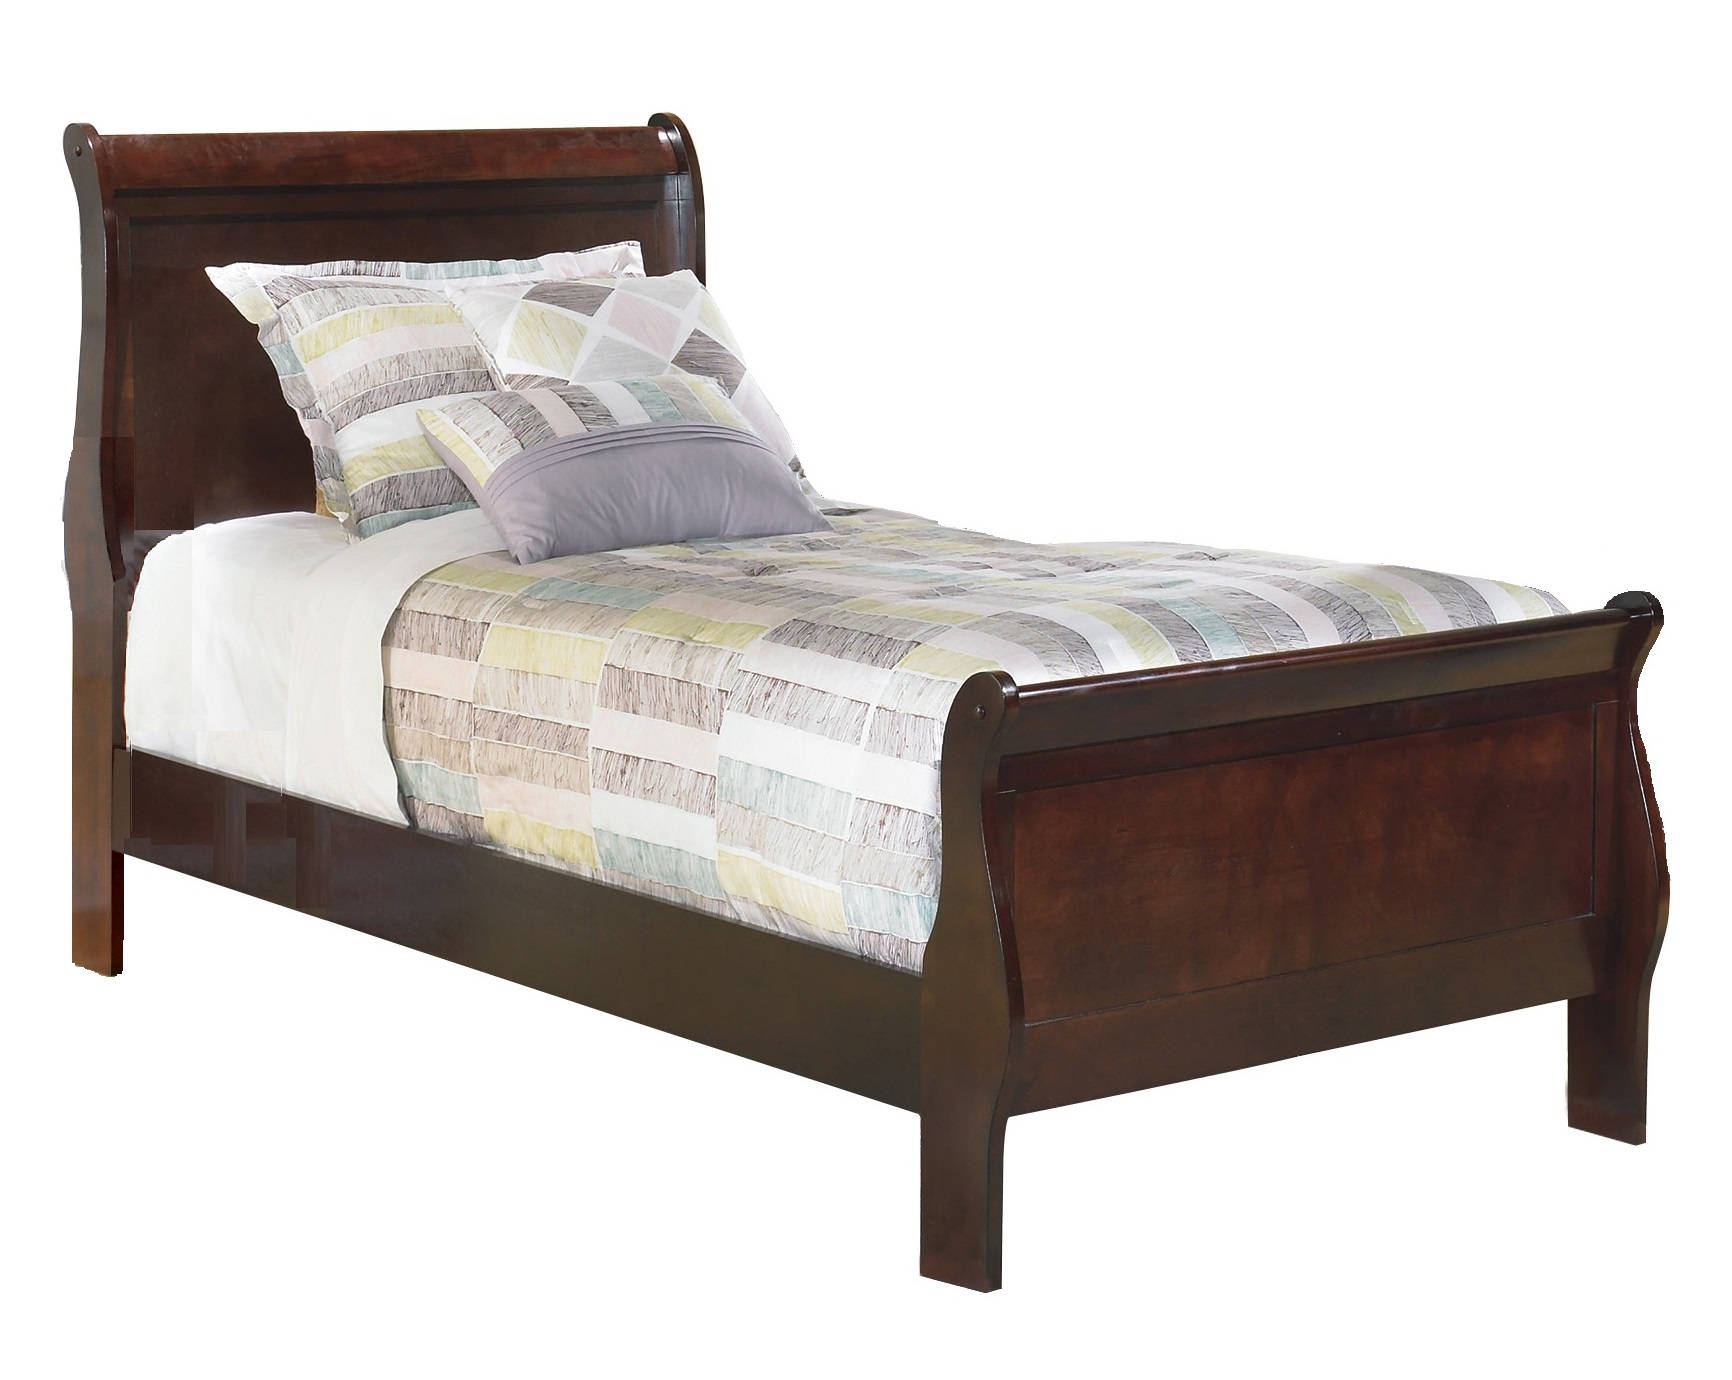 Ashley Furniture Alisdair Dark Brown Twin Sleigh Bed The Classy Home